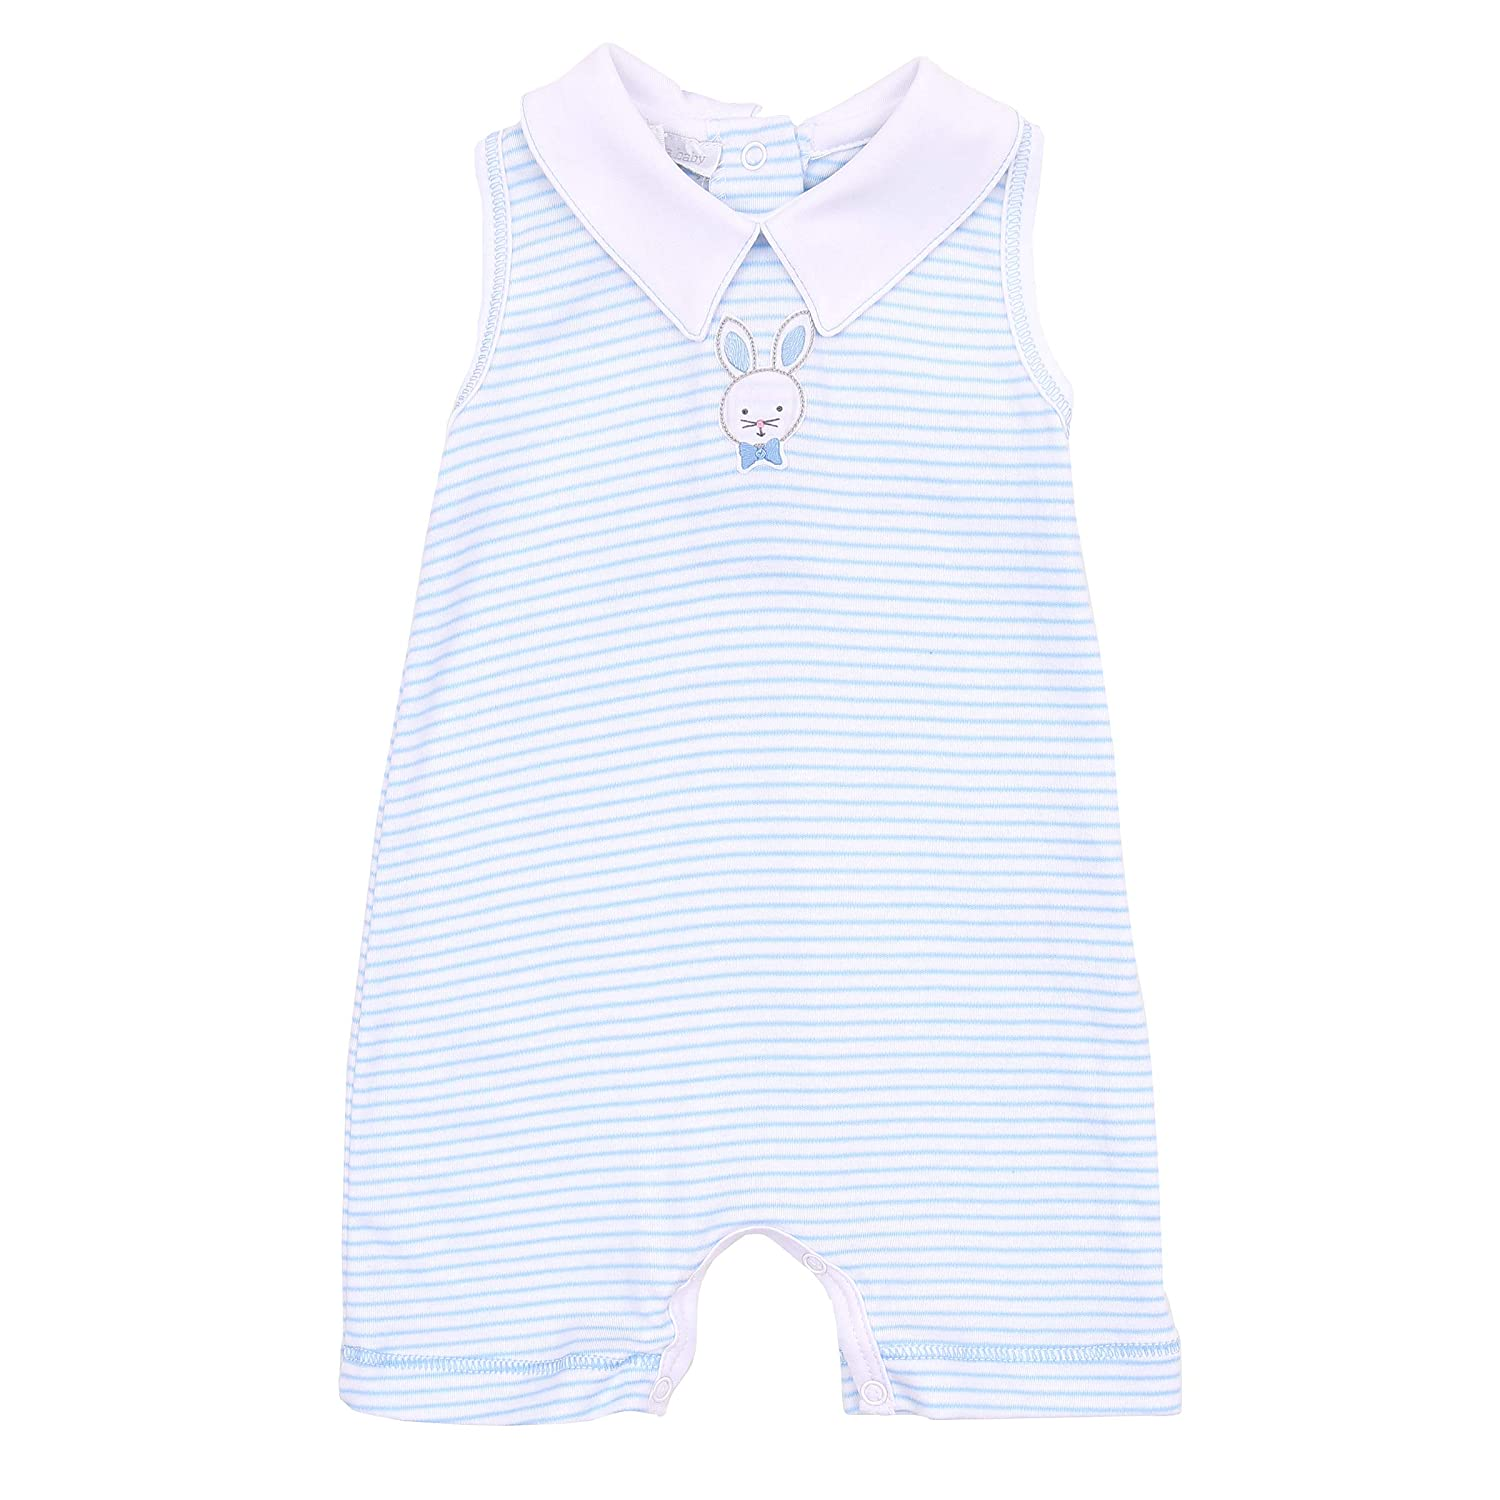 Magnolia Baby Baby Boy Classic Bunnies Emb Collared Sleeveless Short Playsuit Blue